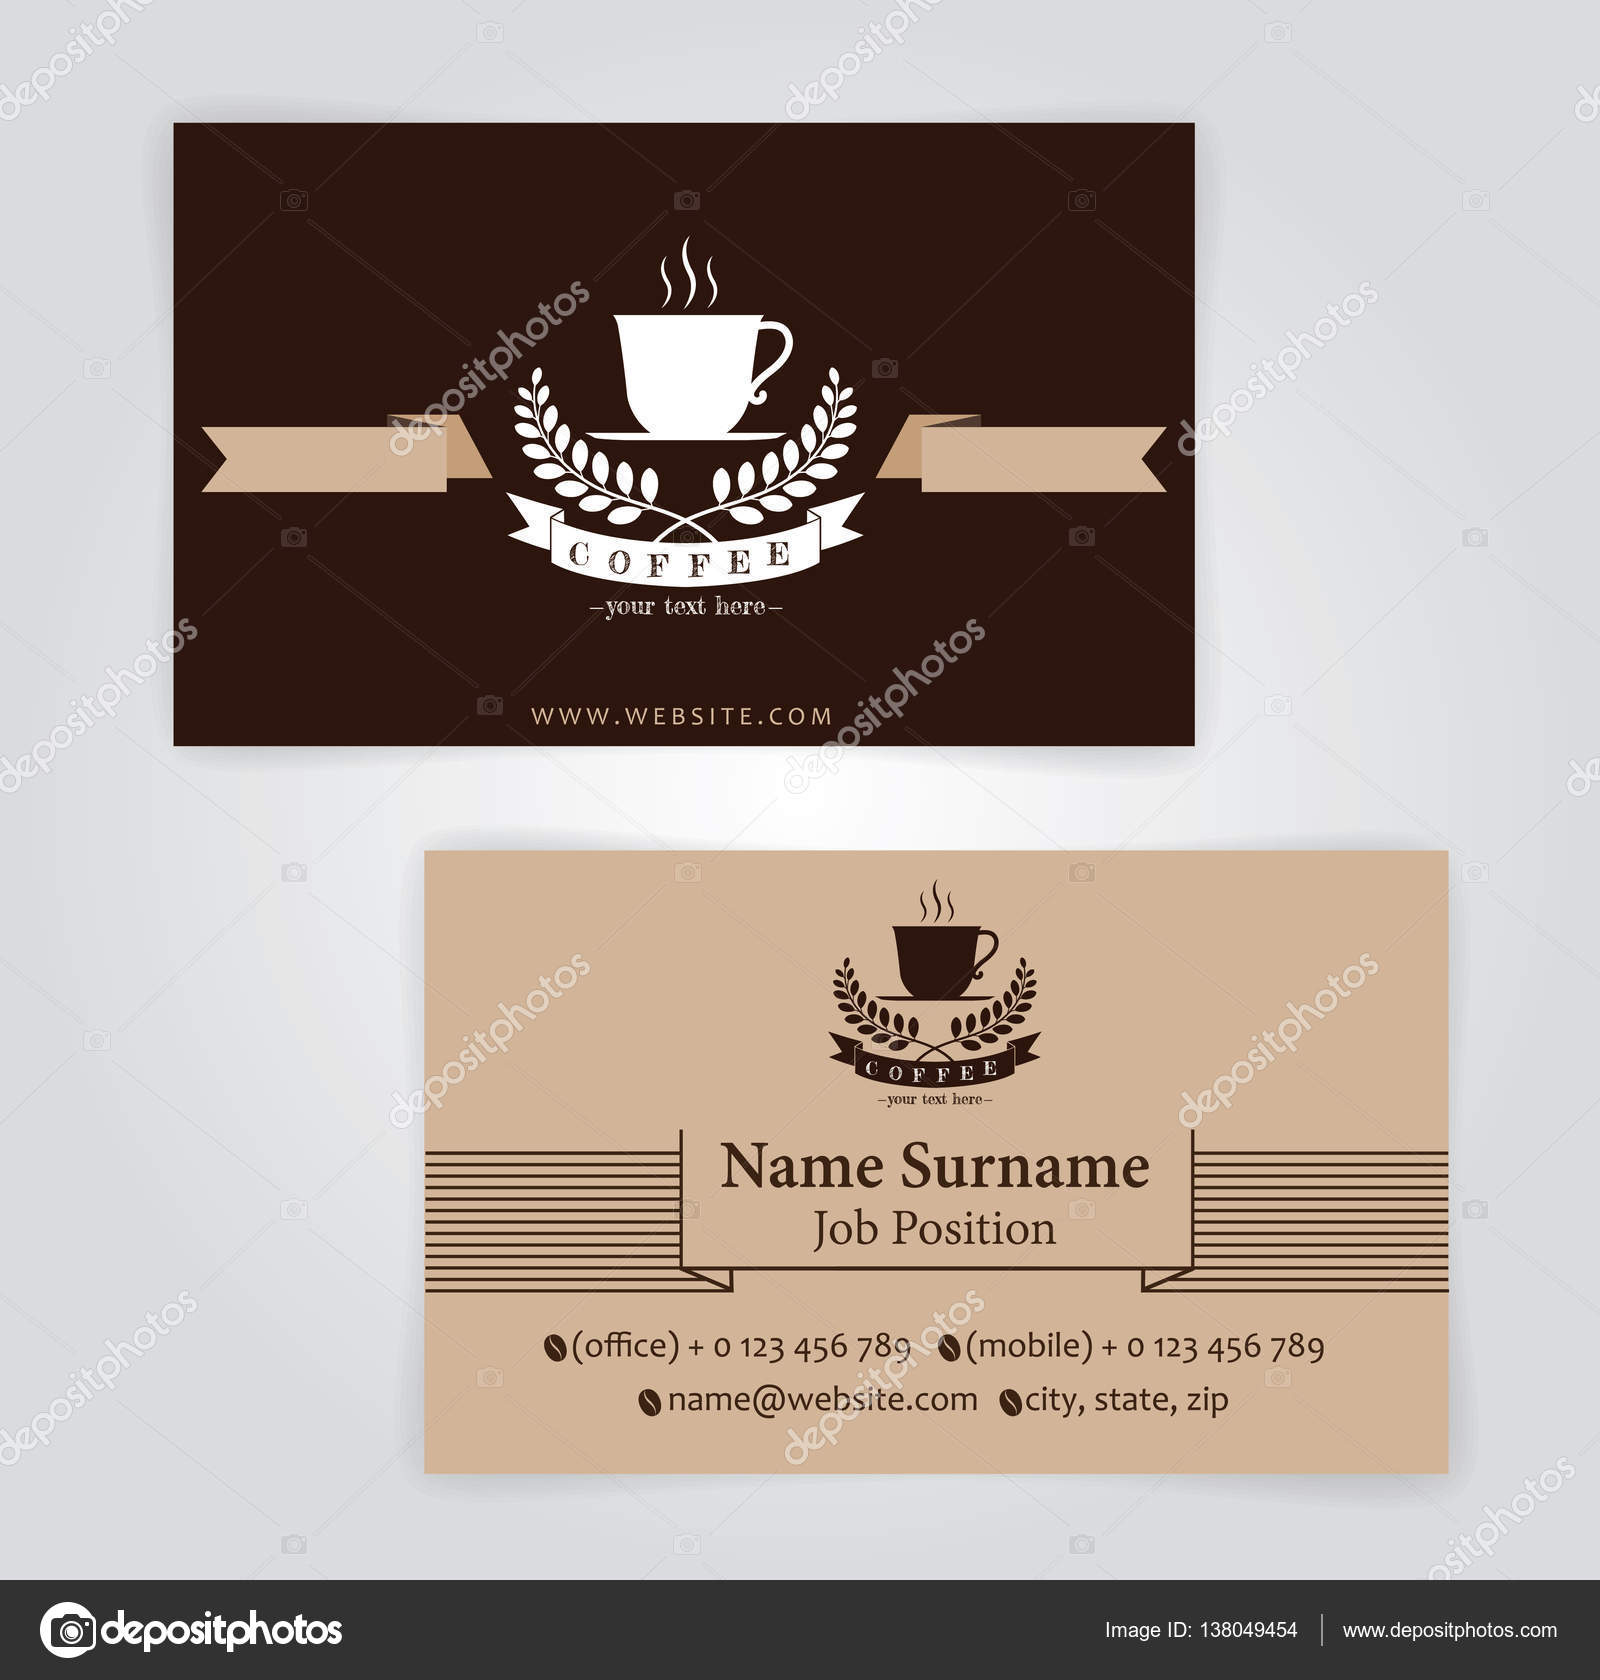 business card coffee template, For Coffee shop — Stock Vector ...